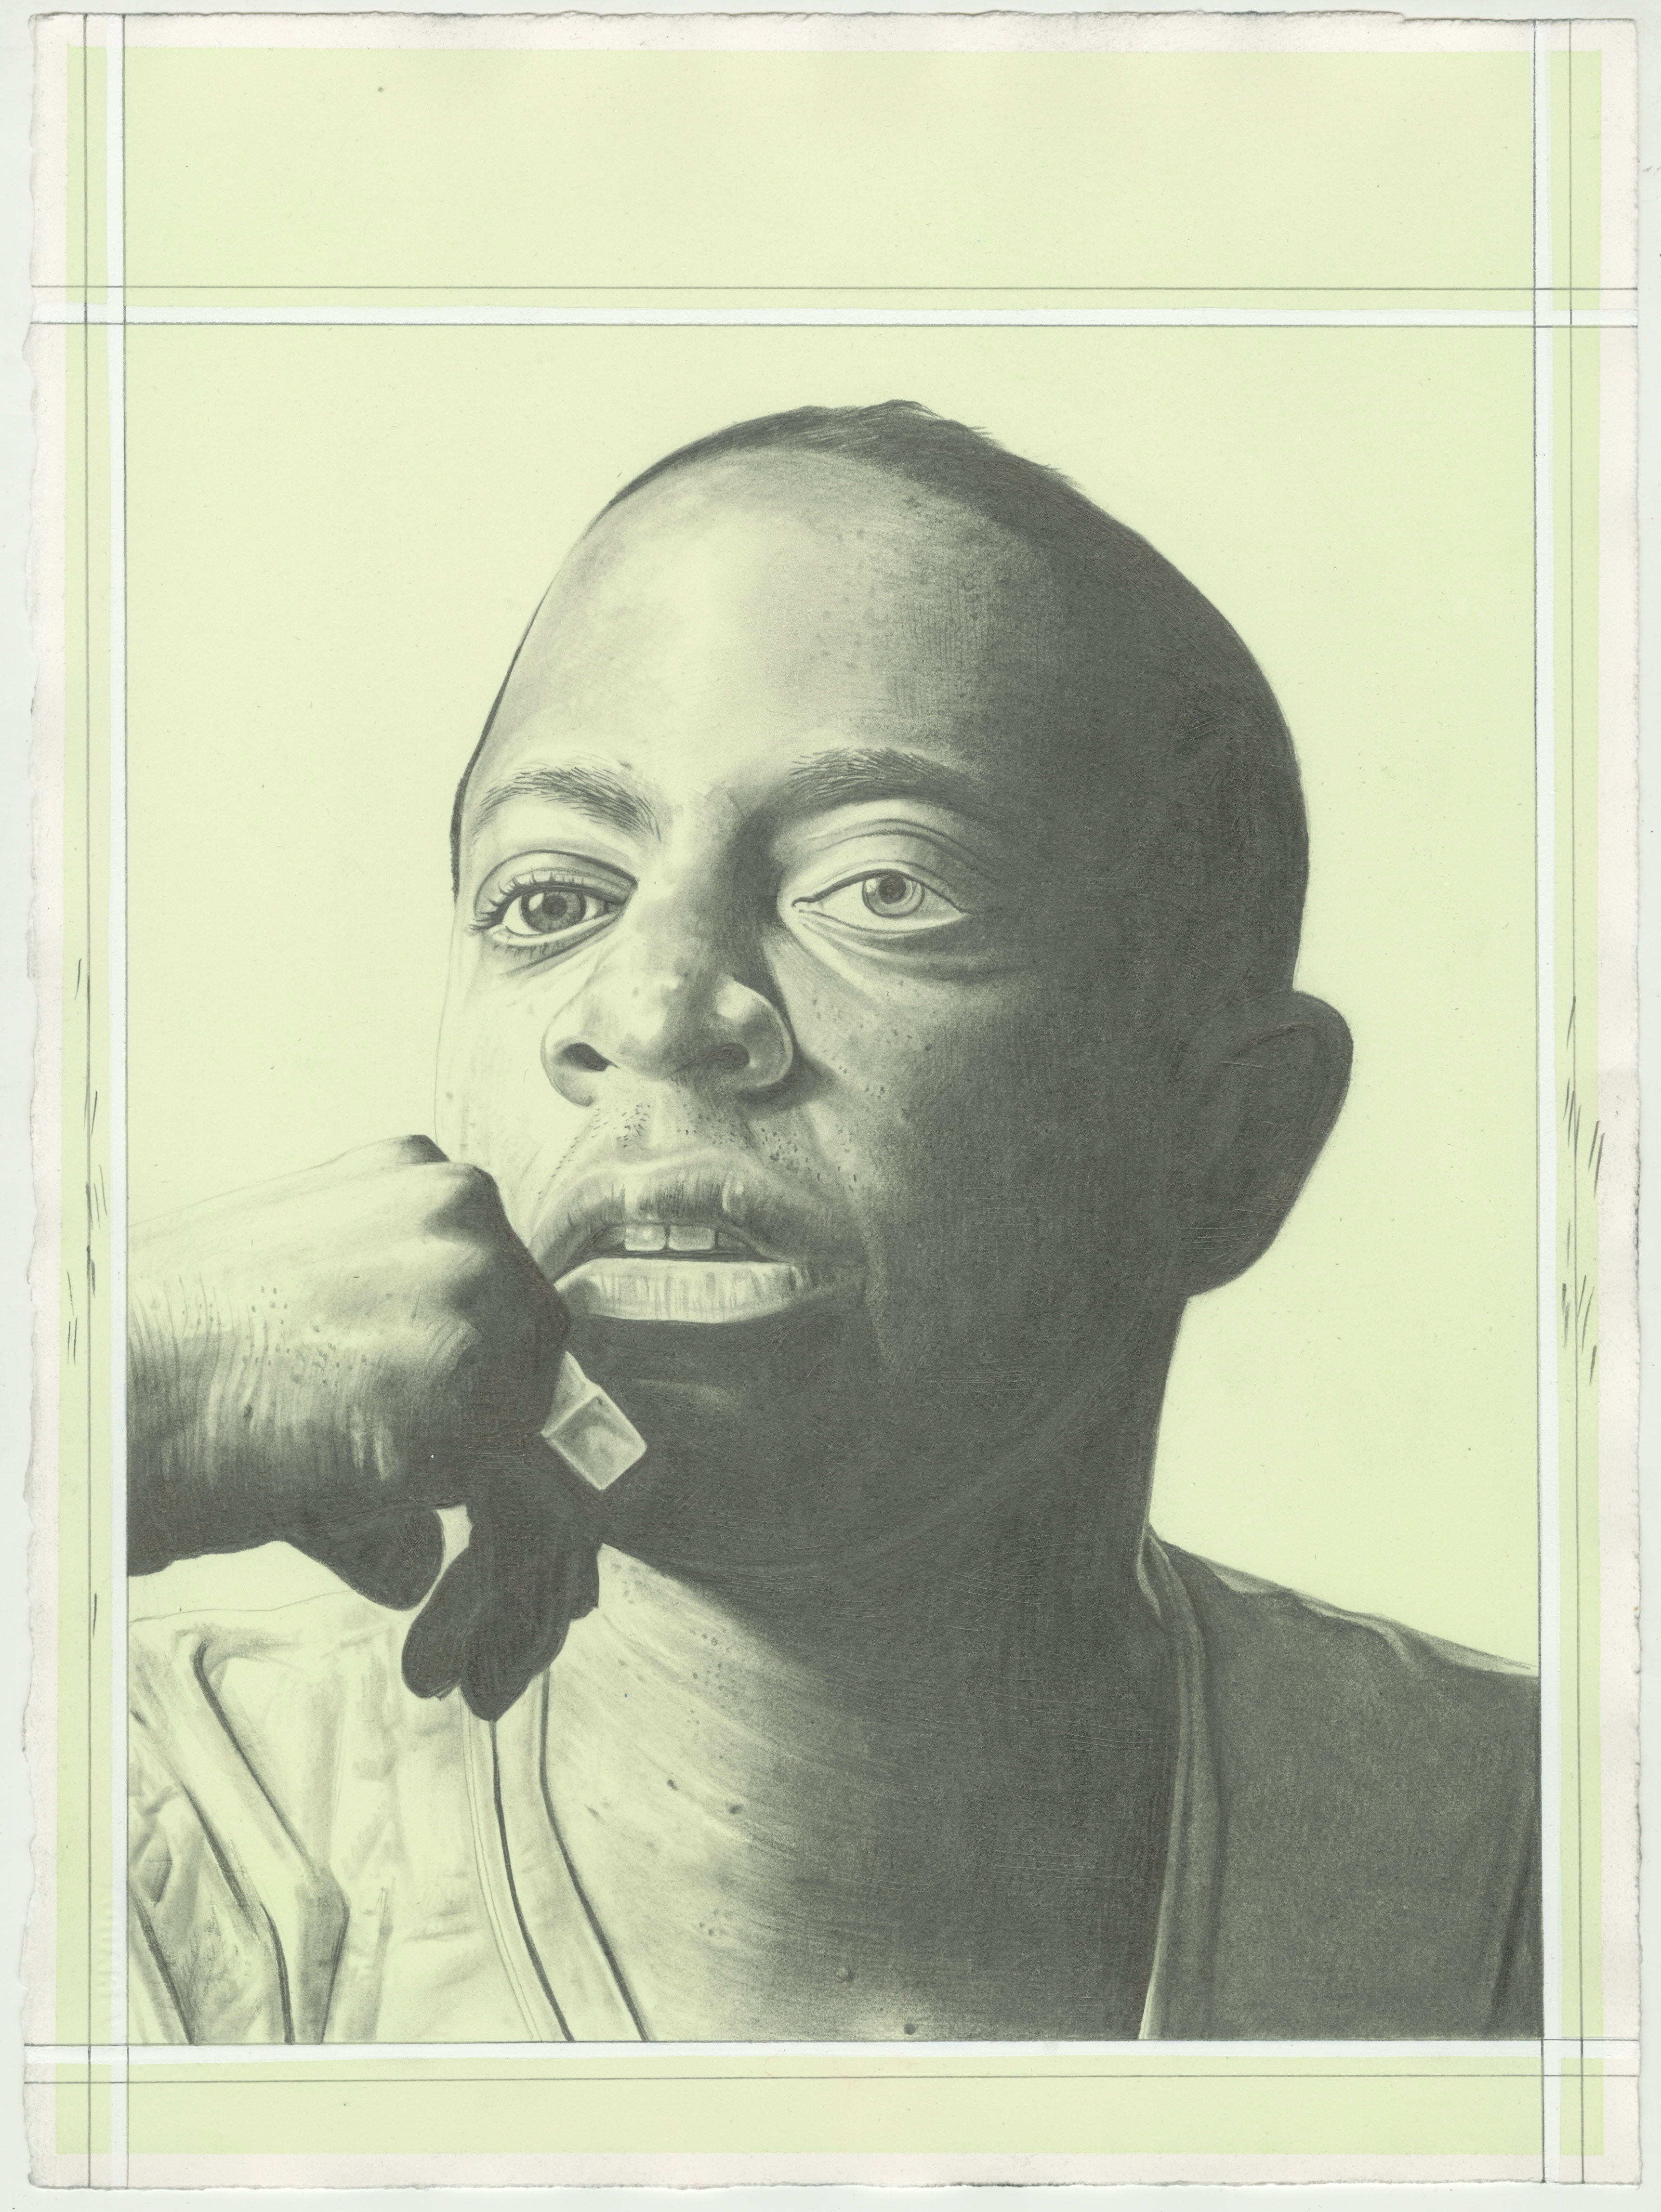 Portrait of Sanford Biggers. Pencil on Paper by Phong H. Bui